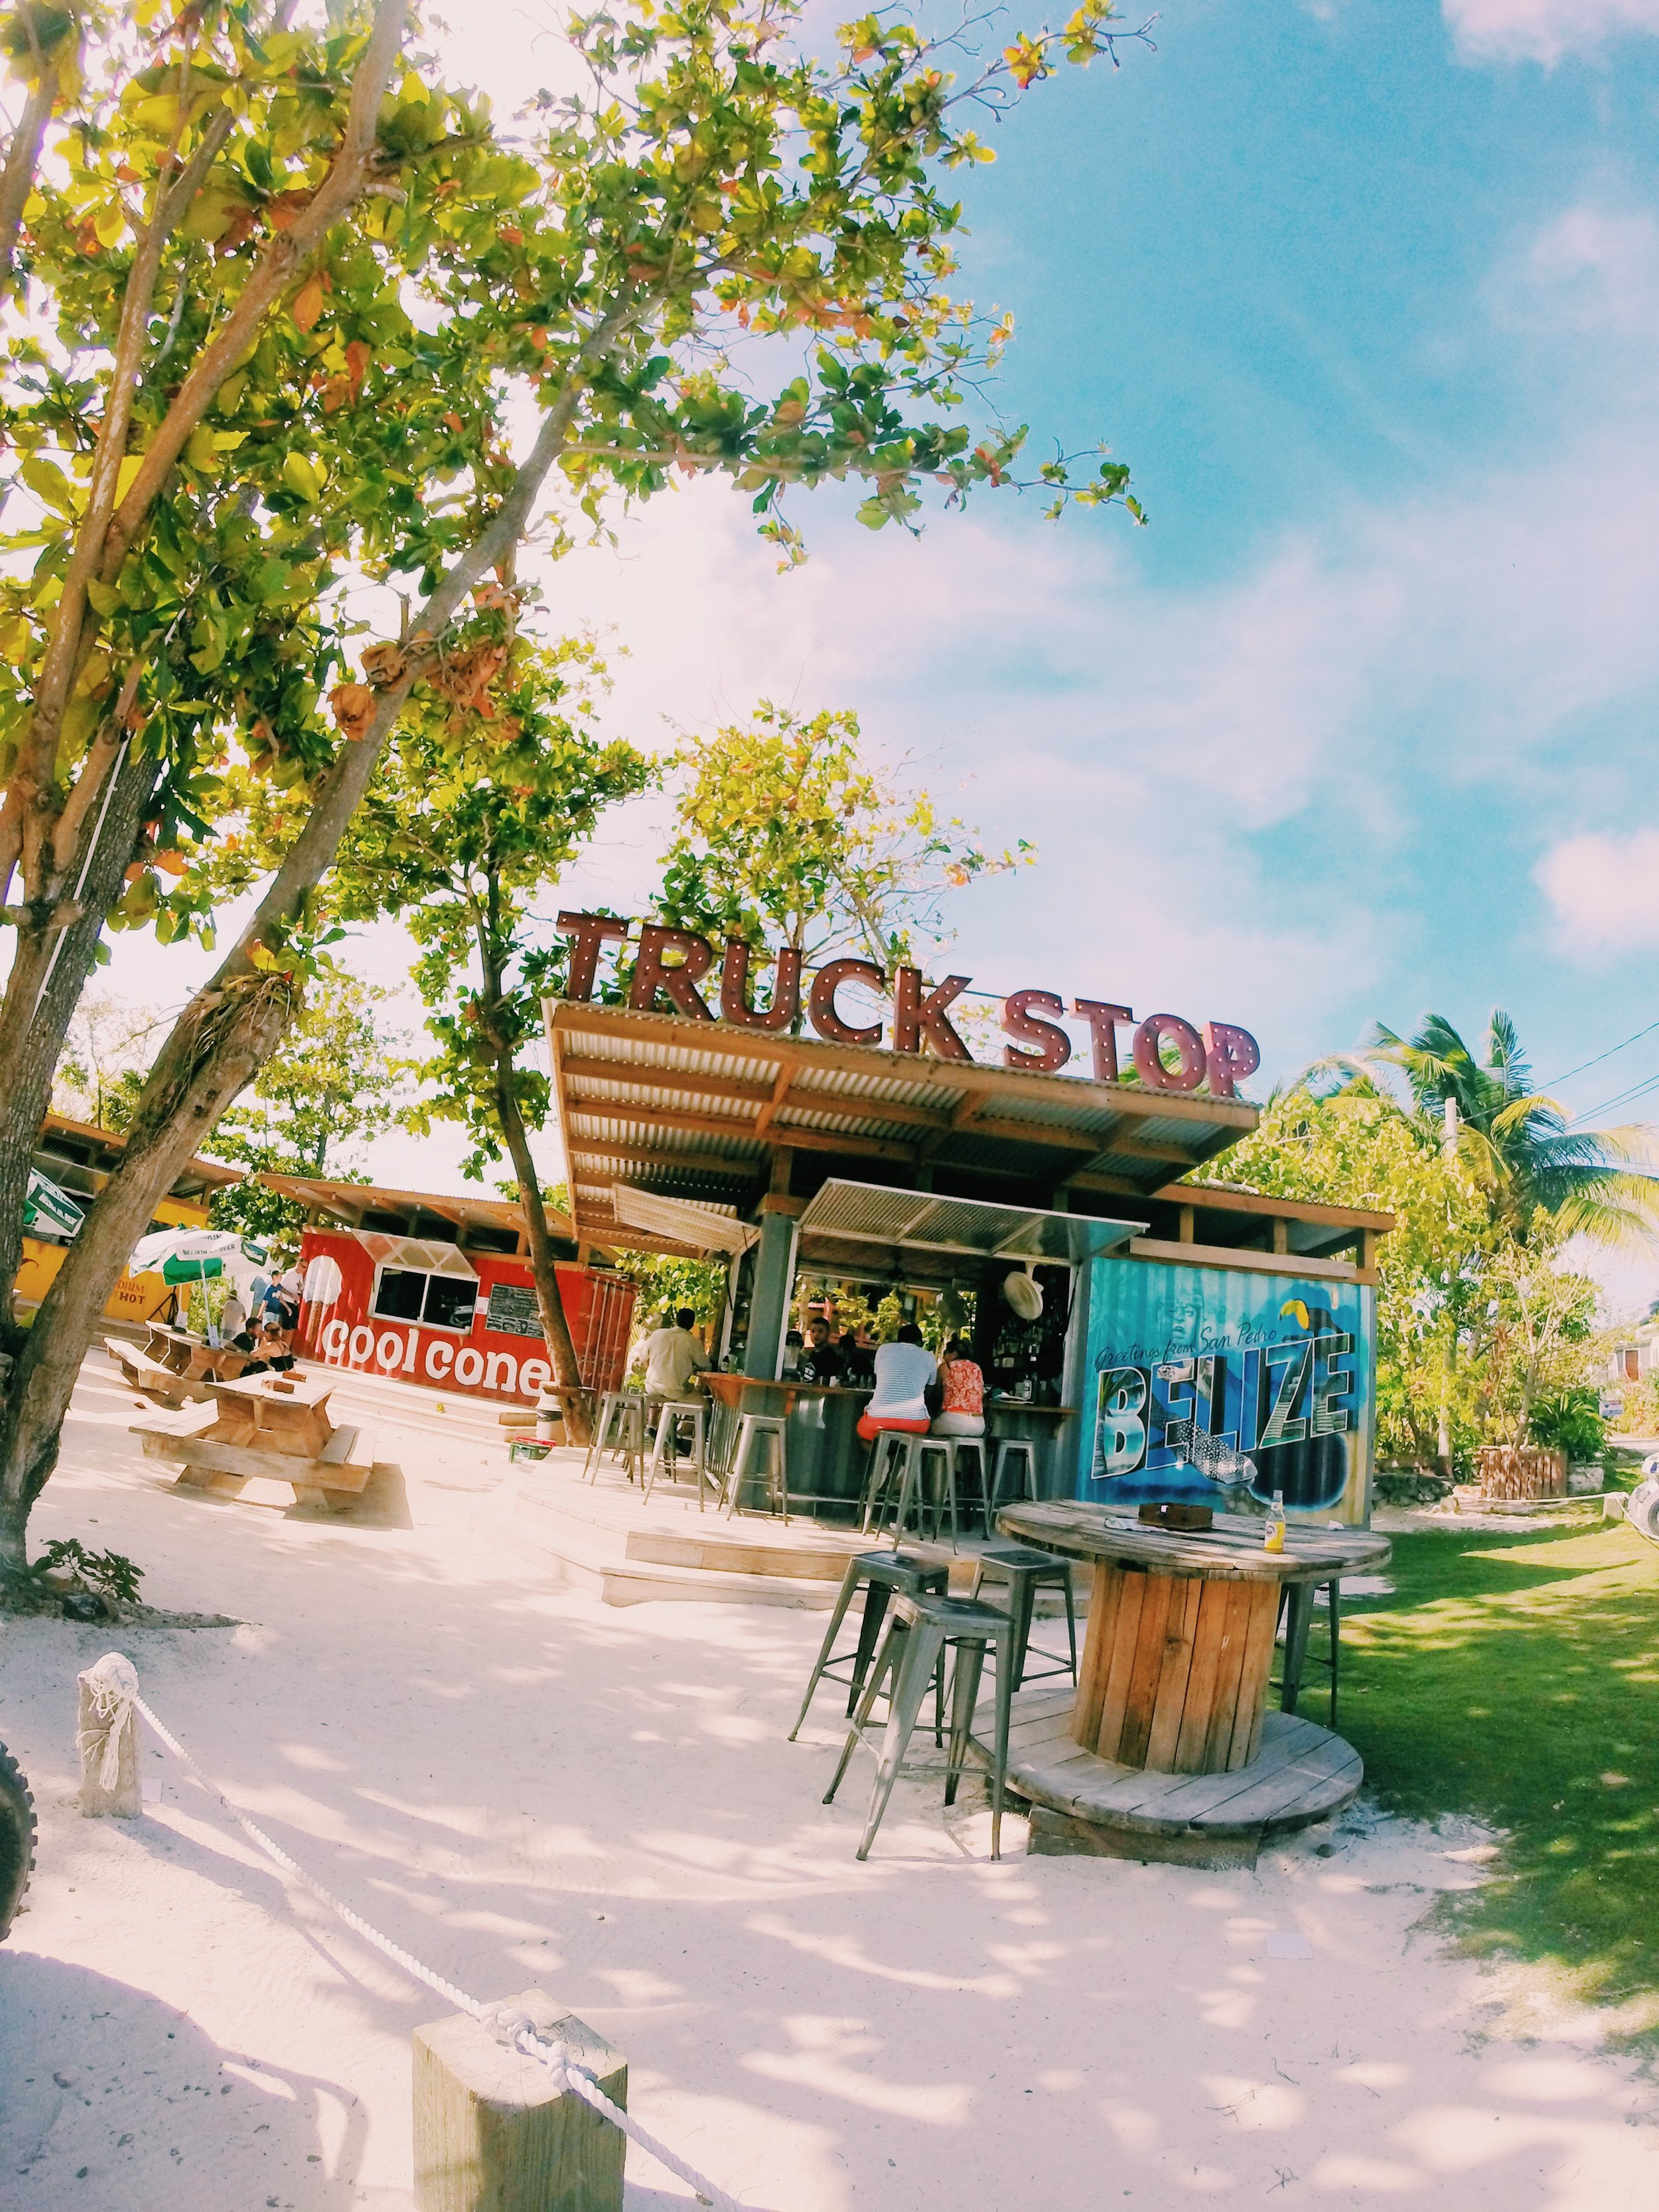 San Pedro, Belize. Truck Stop food trucks and yard games. Go on Sunday Funday!